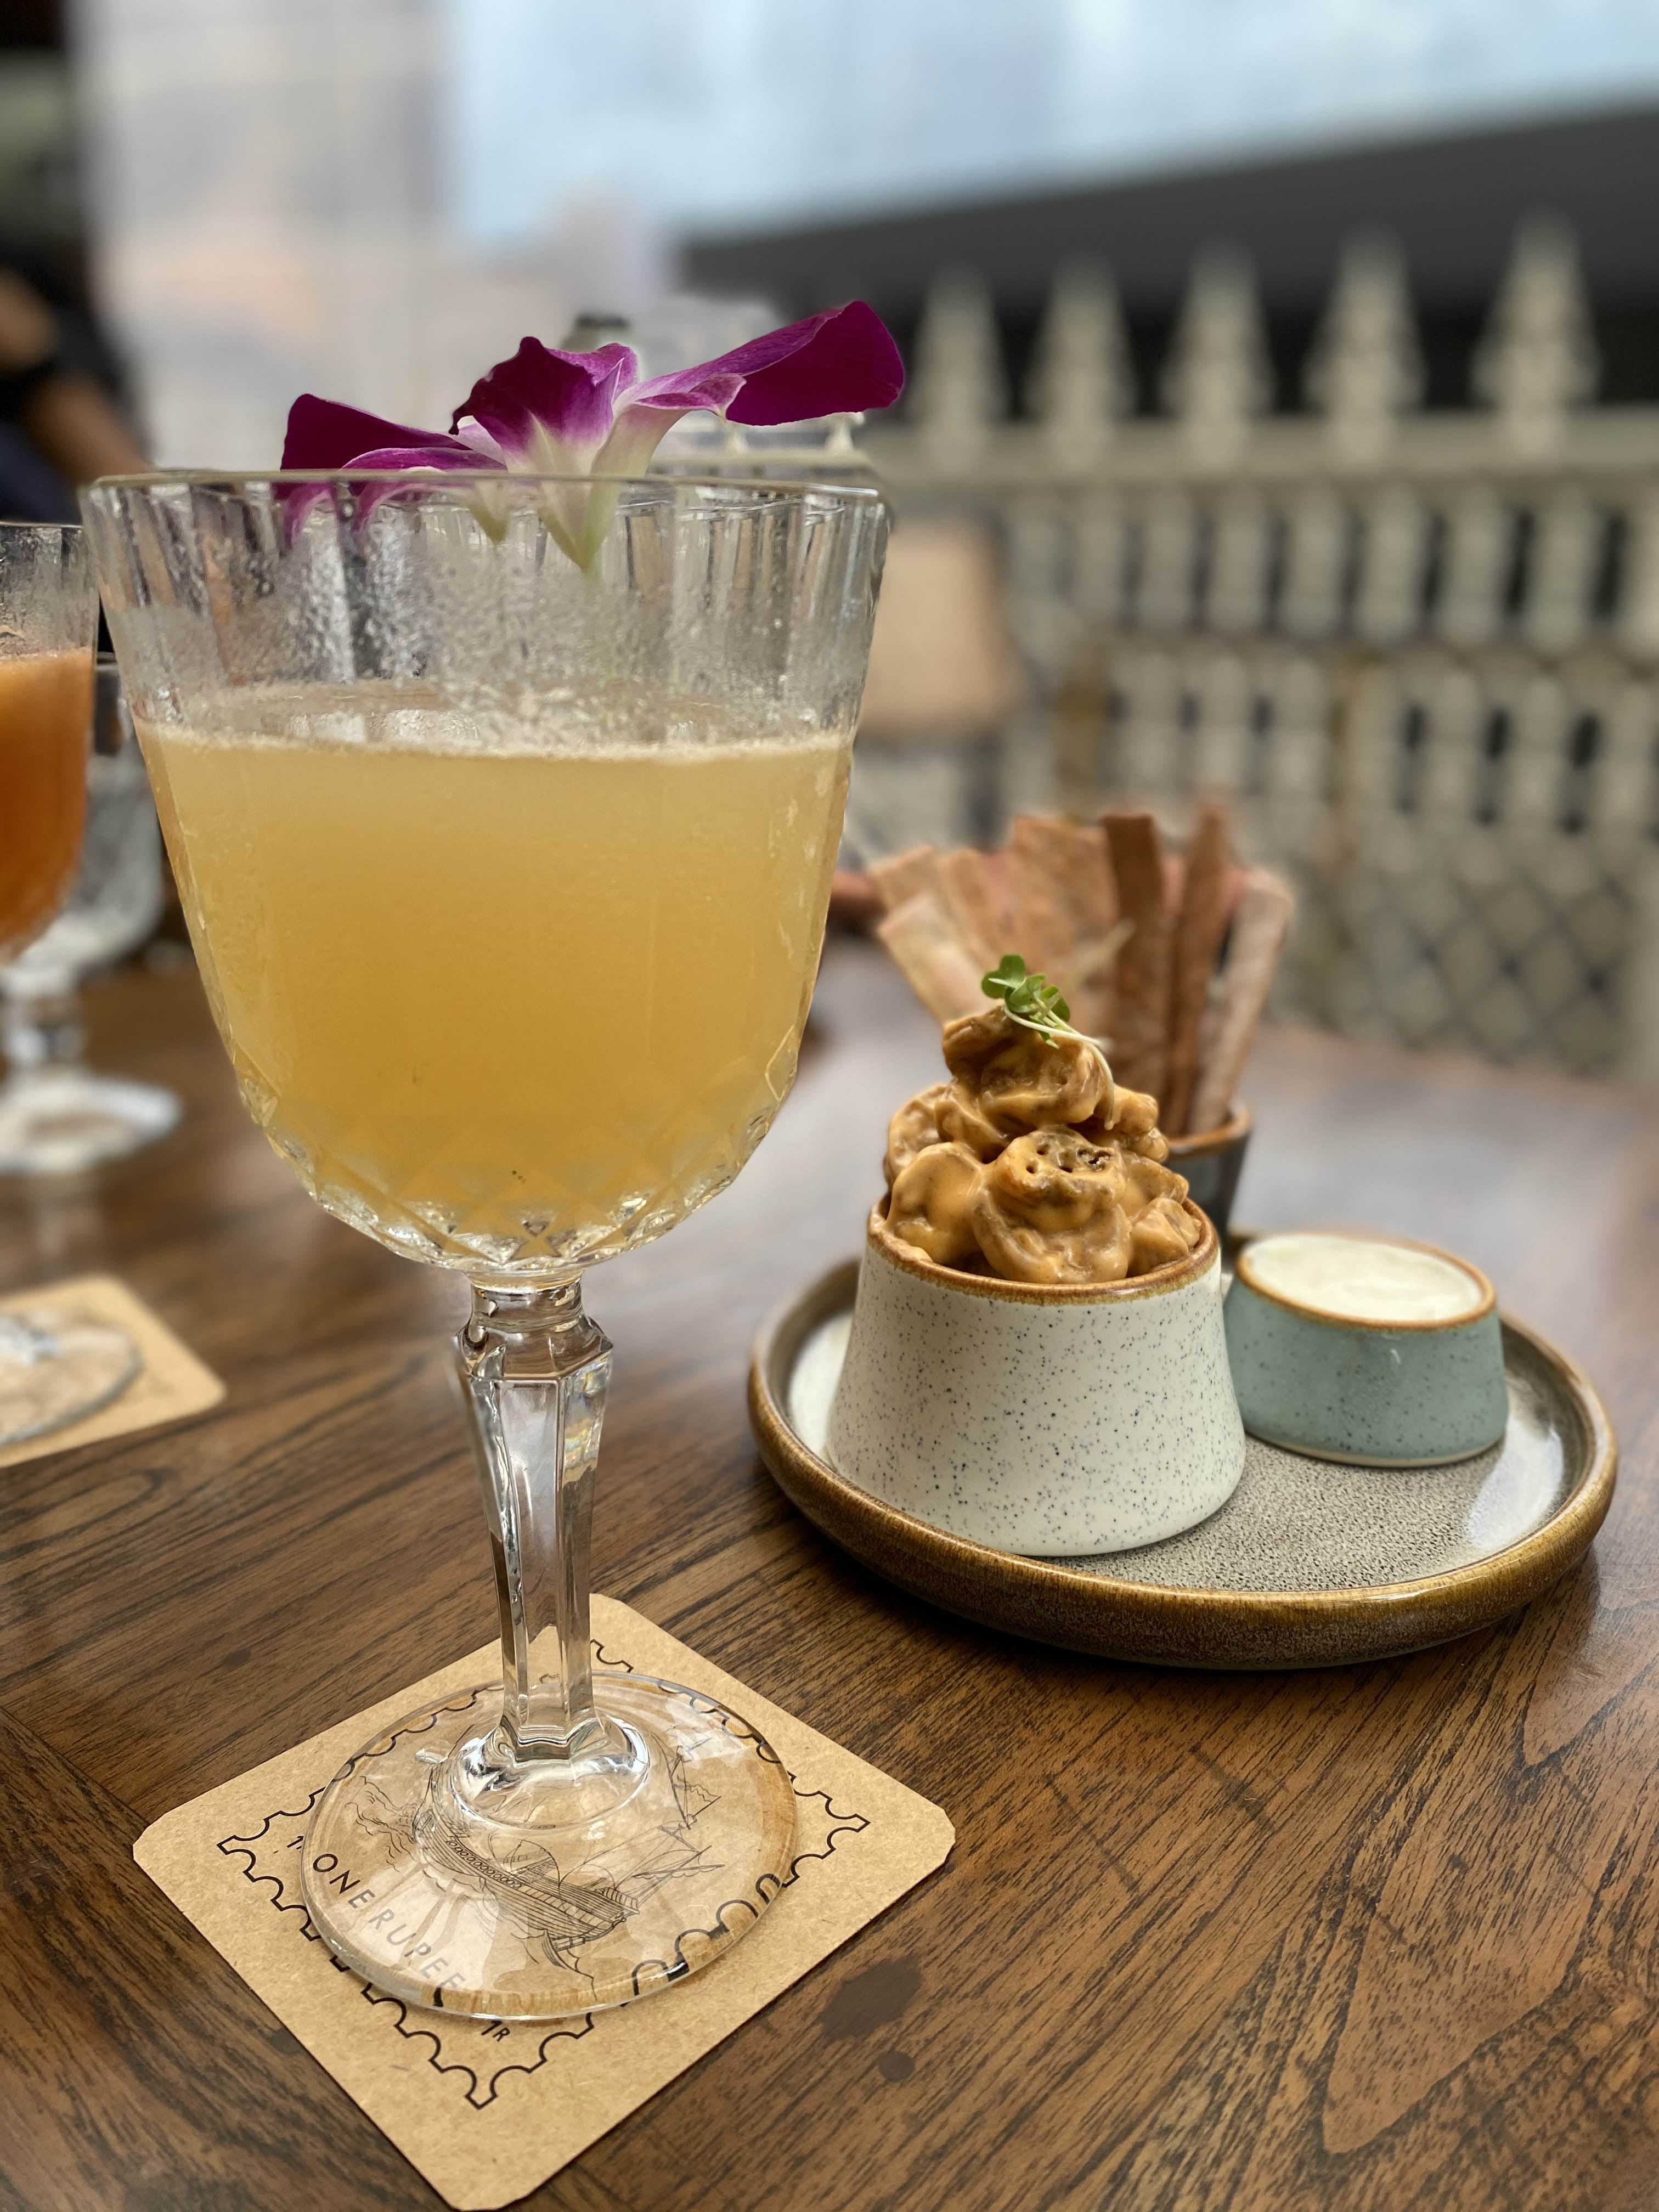 Food,Drink,Classic cocktail,Champagne cocktail,Ingredient,Alcoholic beverage,Cocktail garnish,Dish,Non-alcoholic beverage,Pisco sour